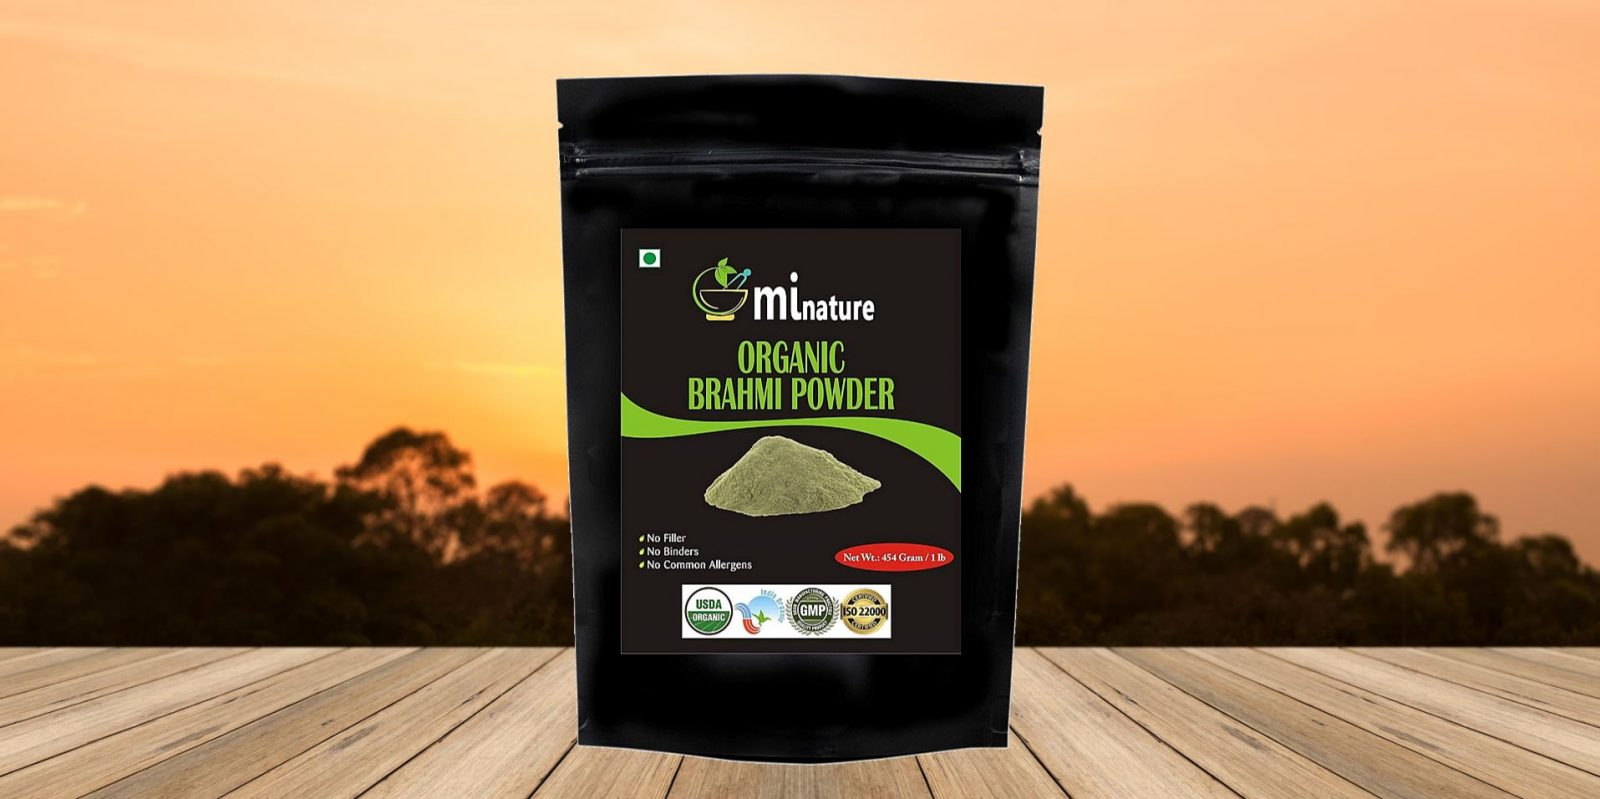 MiNature Organic Brahmi (Bacopa Monnieri) Powder